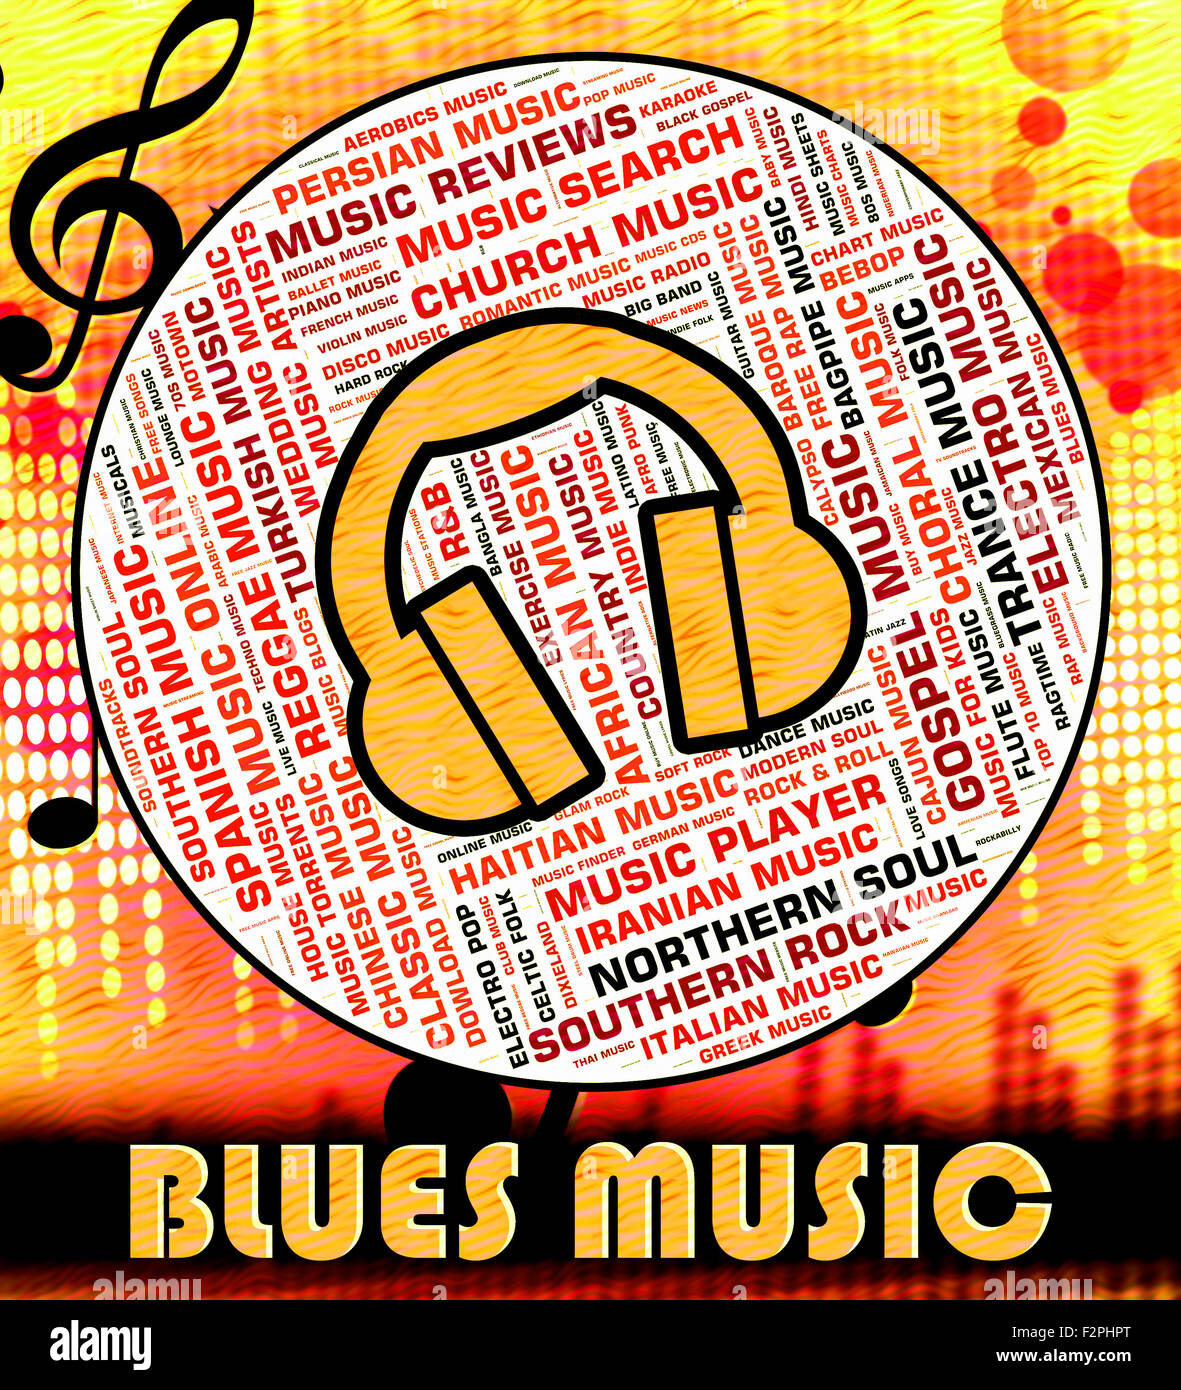 Blues Music Showing Melody Audio And Melodies Stock Photo: 87778064